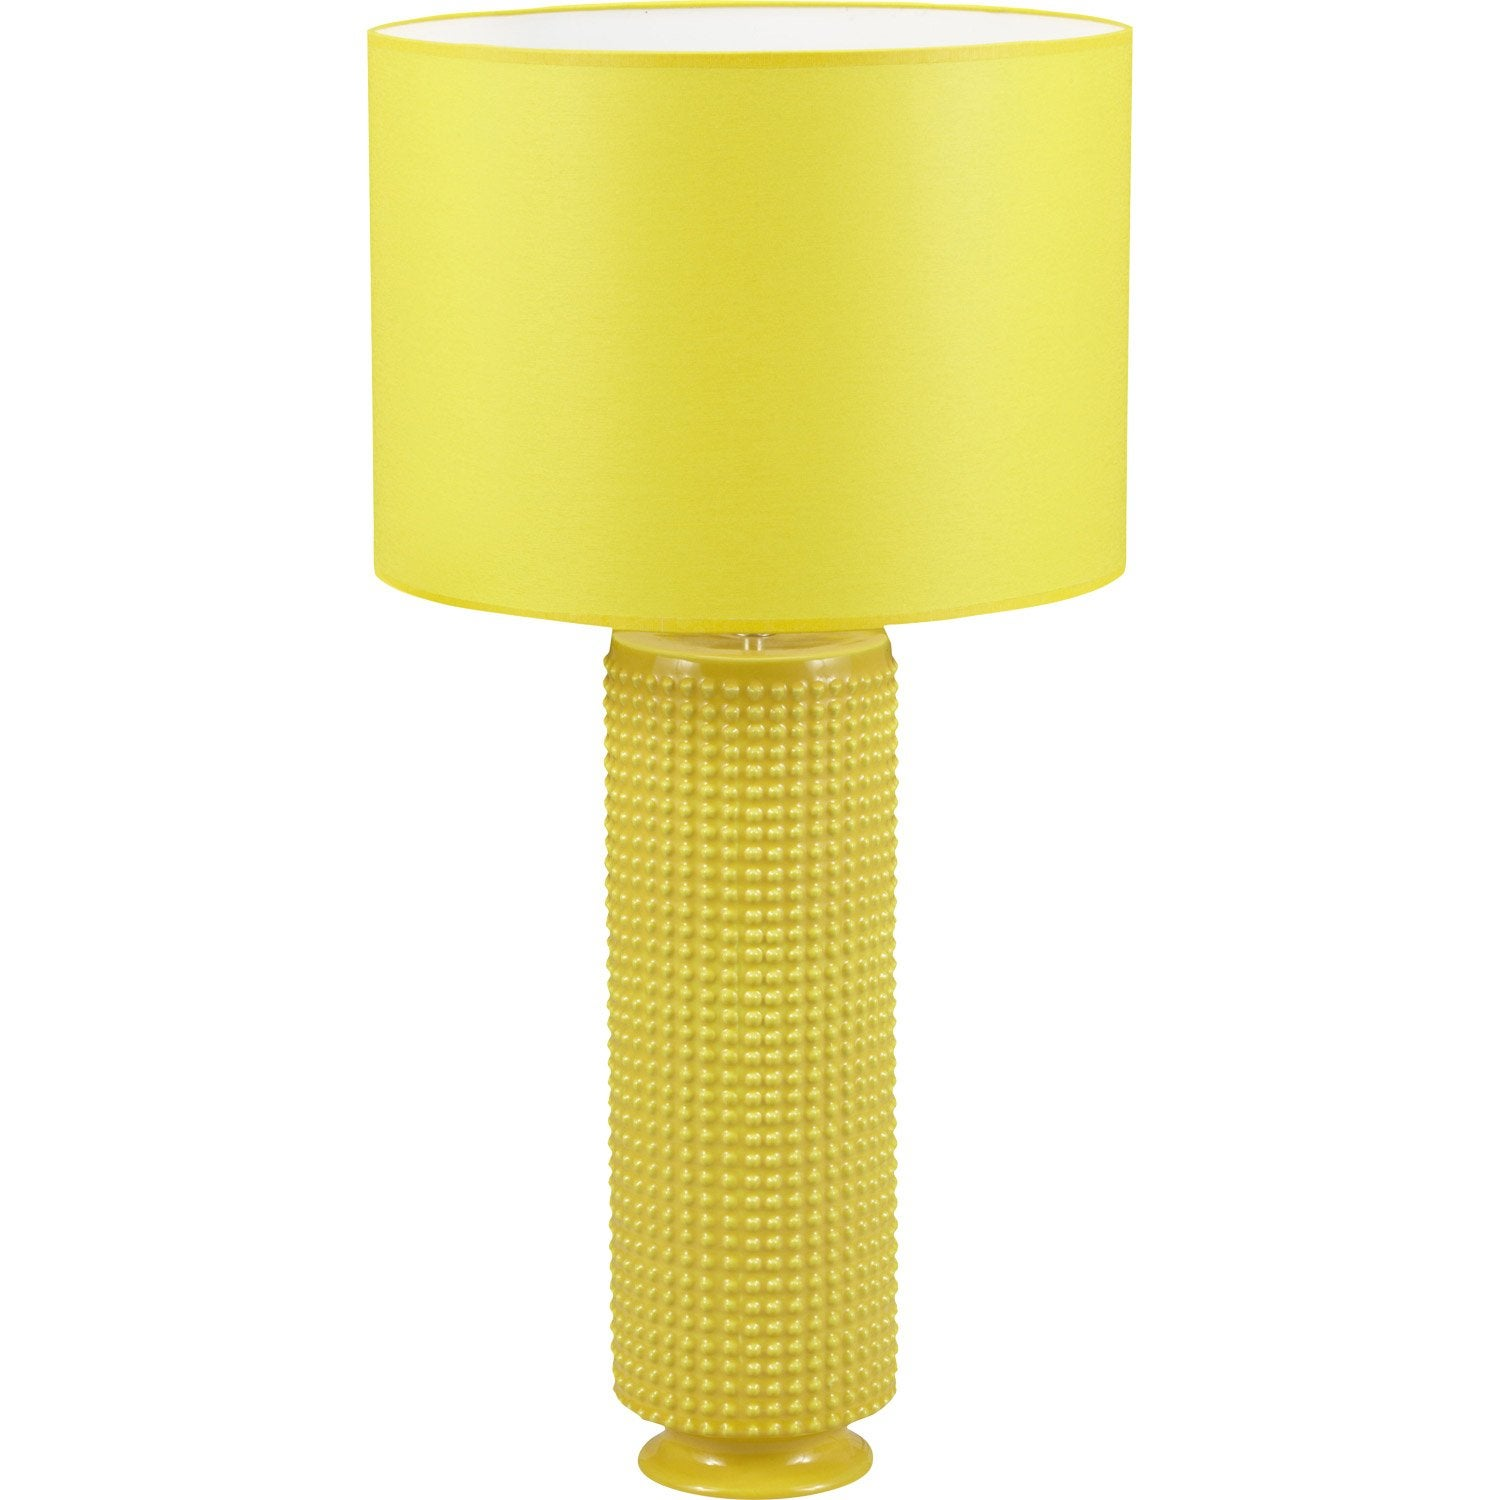 lampe katus coton jaune 60 w leroy merlin. Black Bedroom Furniture Sets. Home Design Ideas